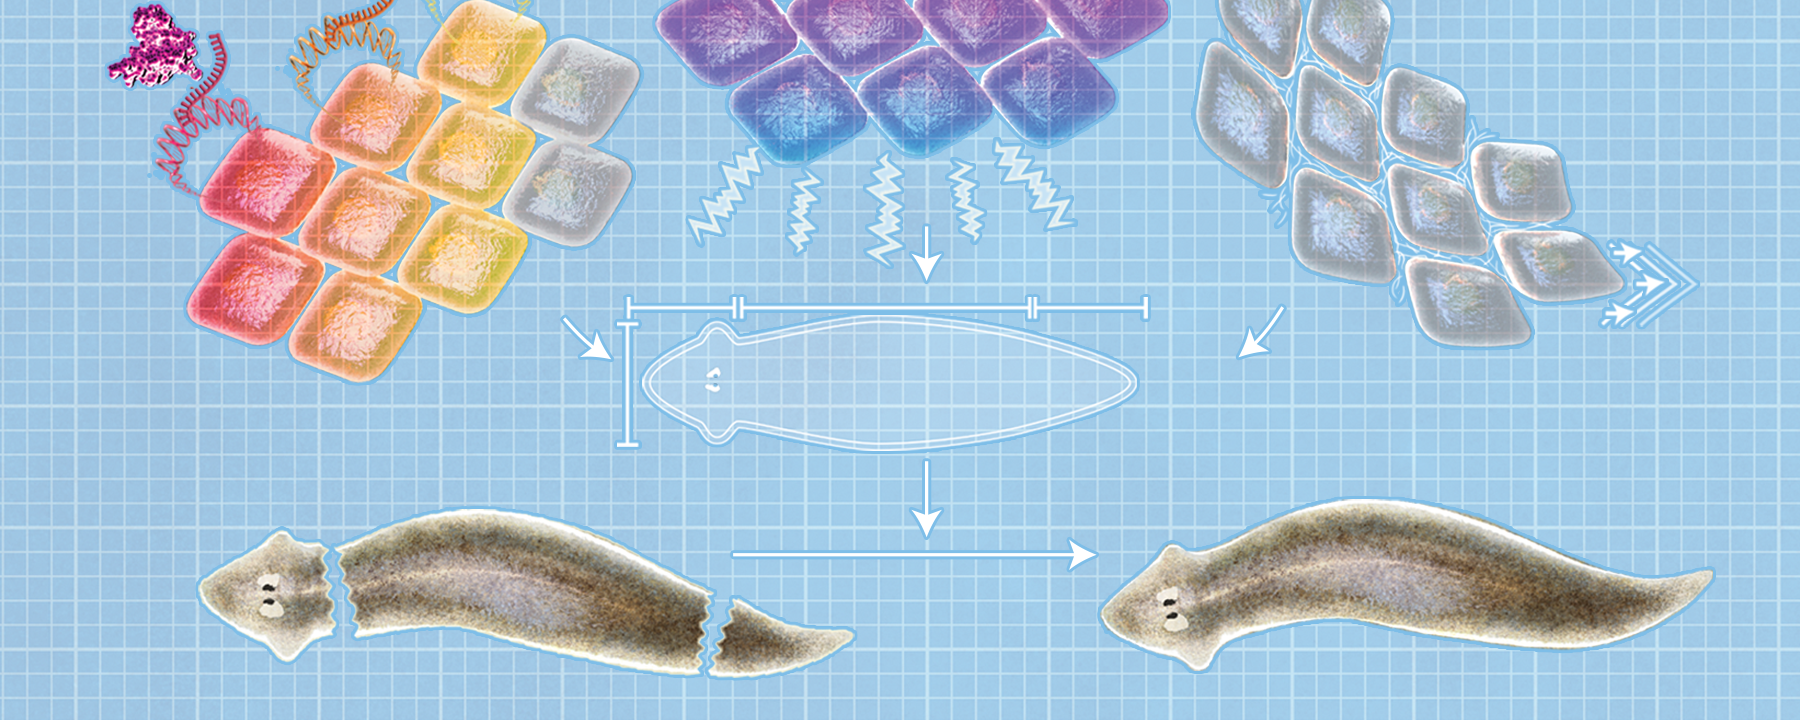 Infographic: Anatomical Construction by Cell Collectives